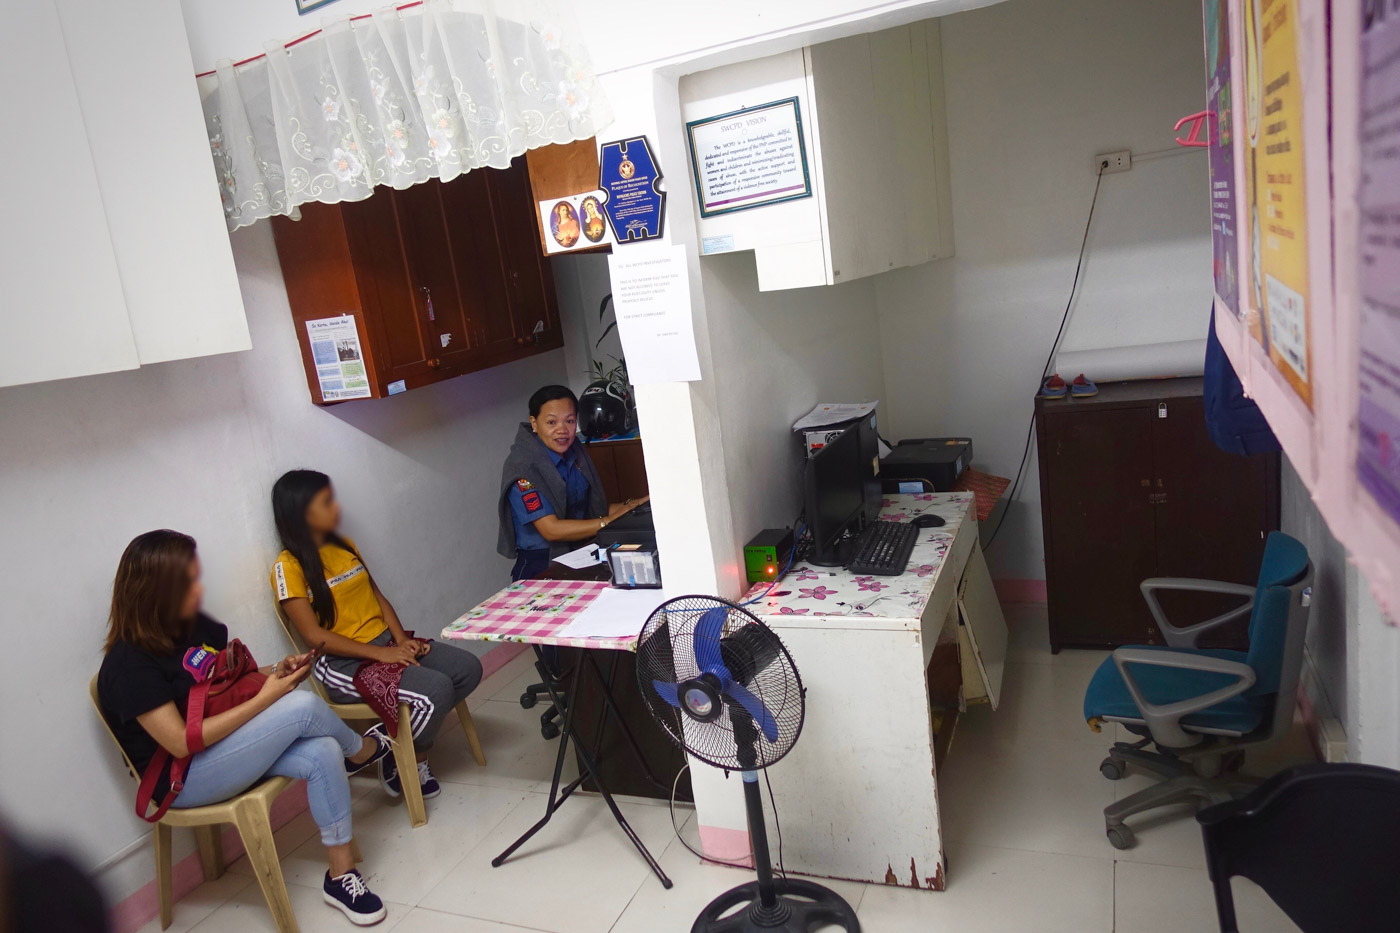 BUSY DESK. The women and children's protection desk at the Quezon City Novaliches police station. Photo by Rambo Talabong/Rappler